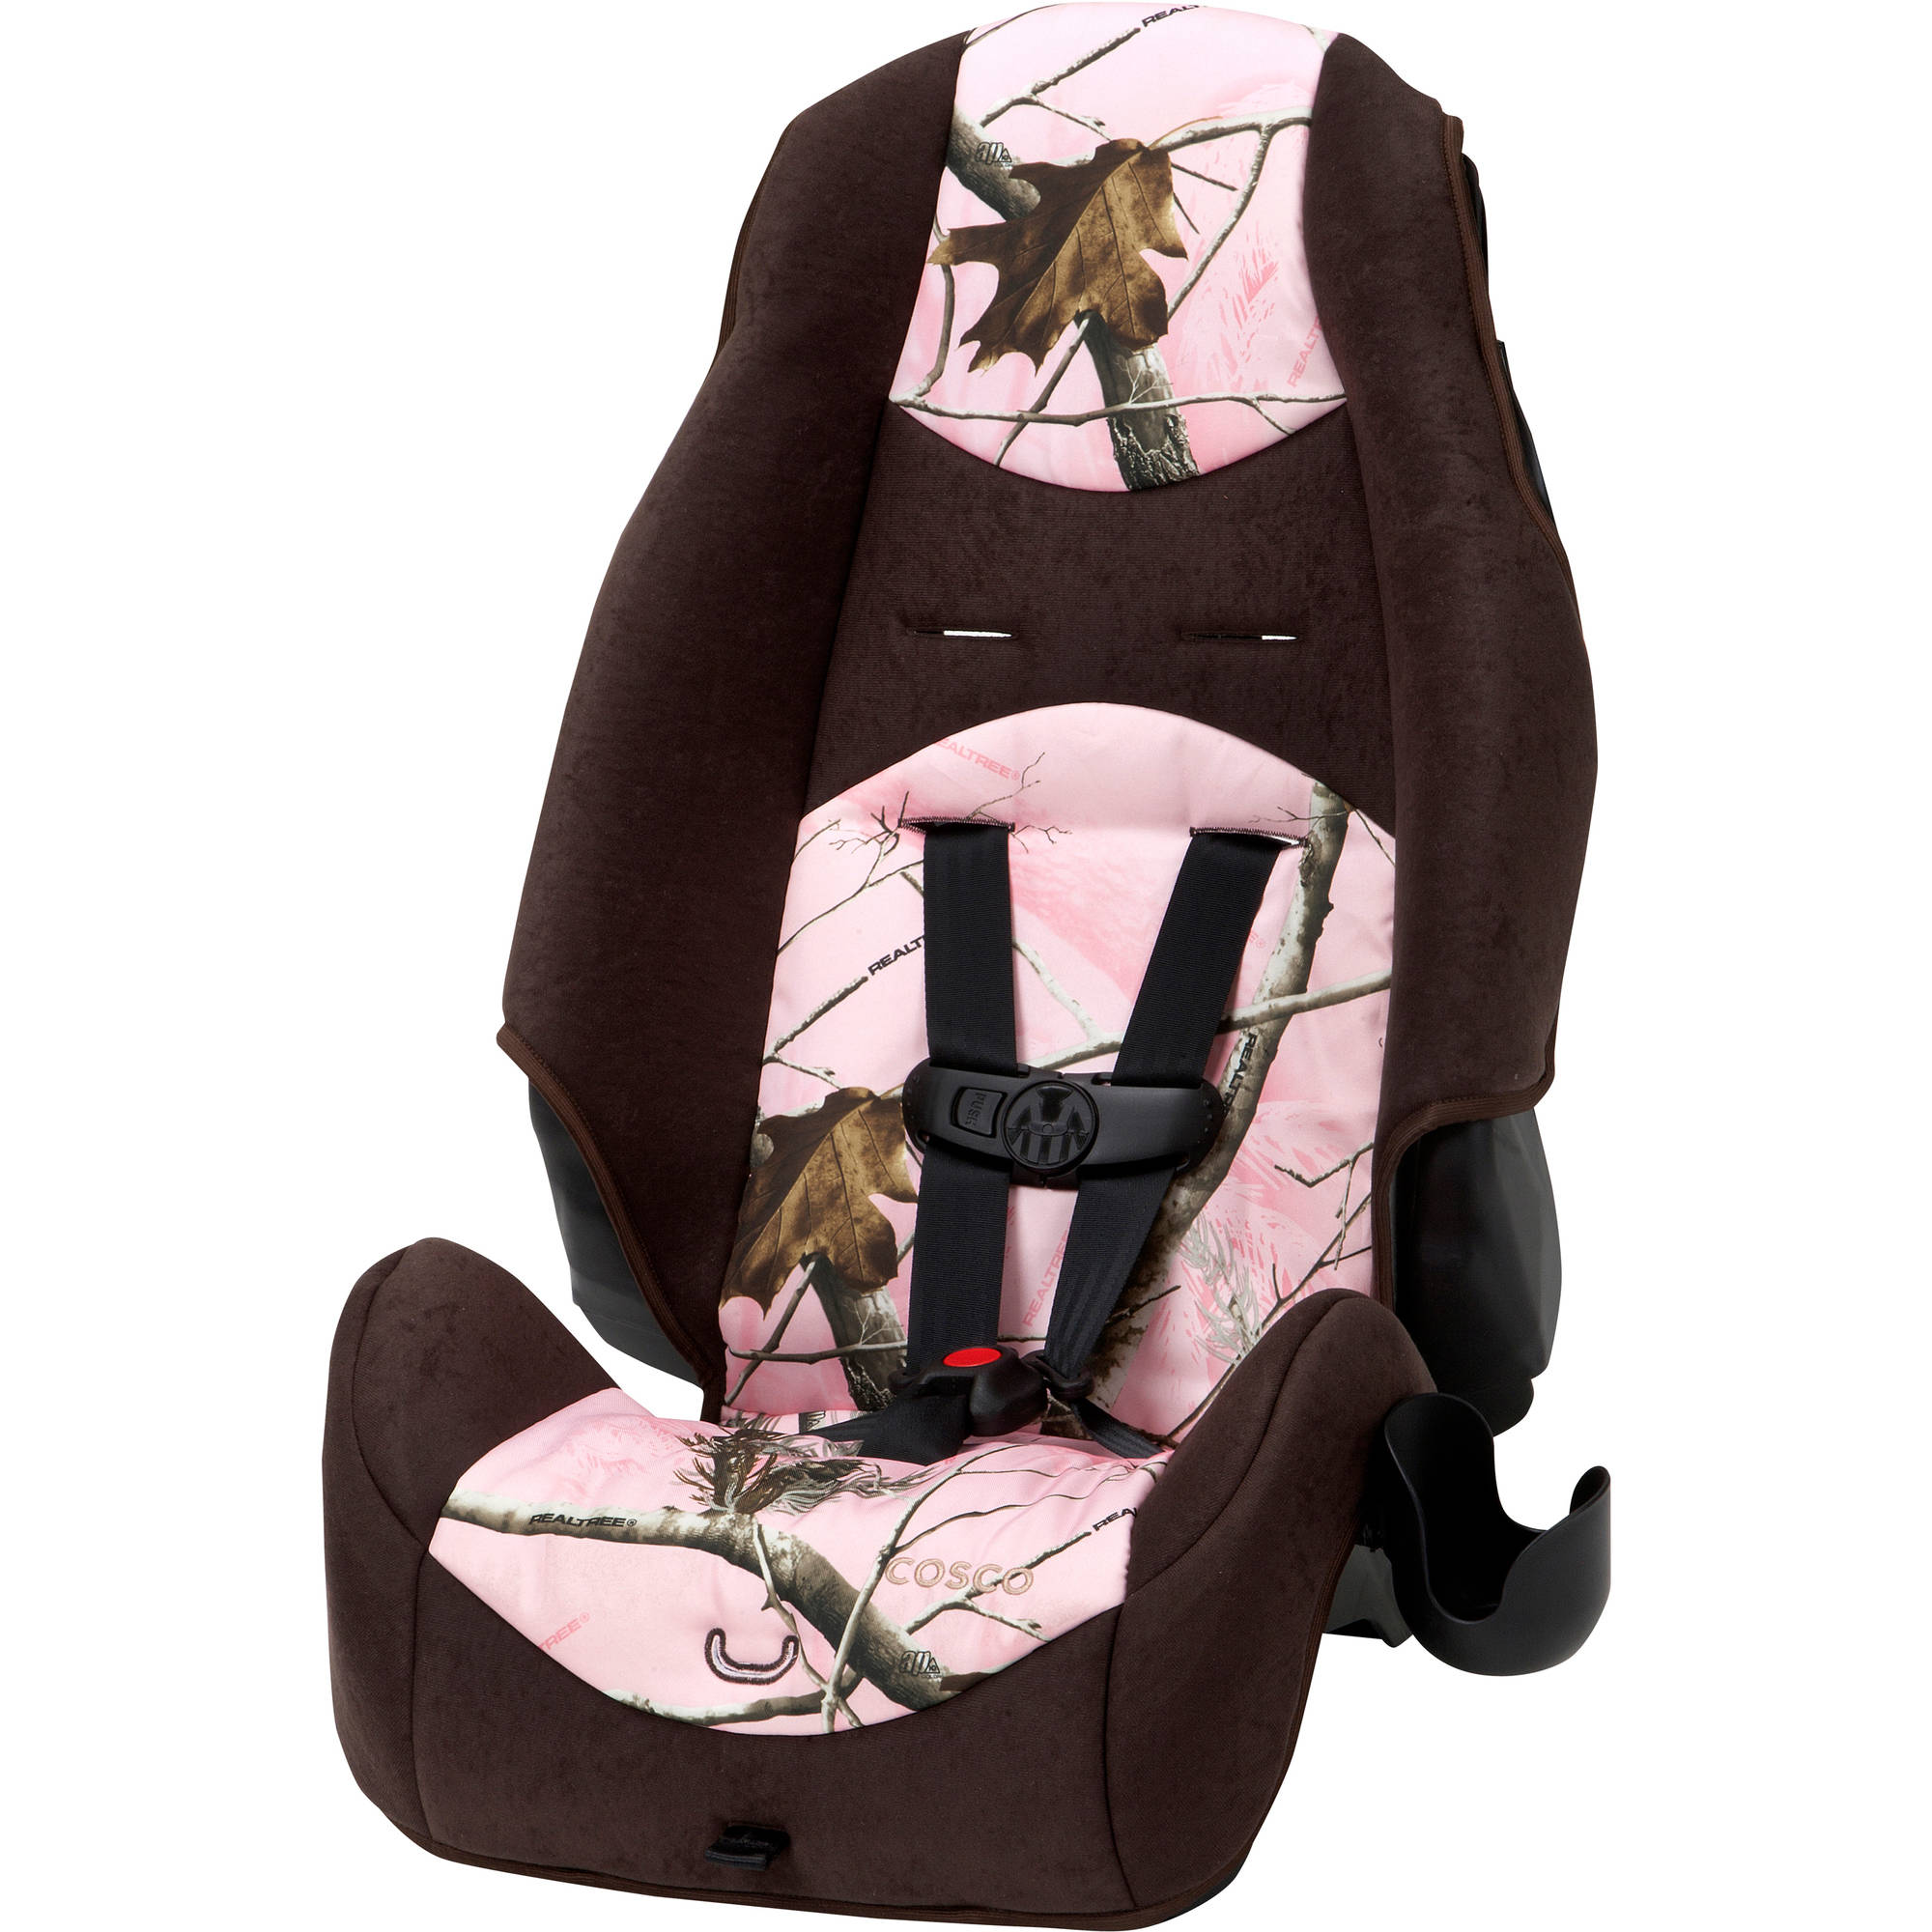 Cosco Highback 2-in-1 Booster Car Seat, Realtree Ap Pink